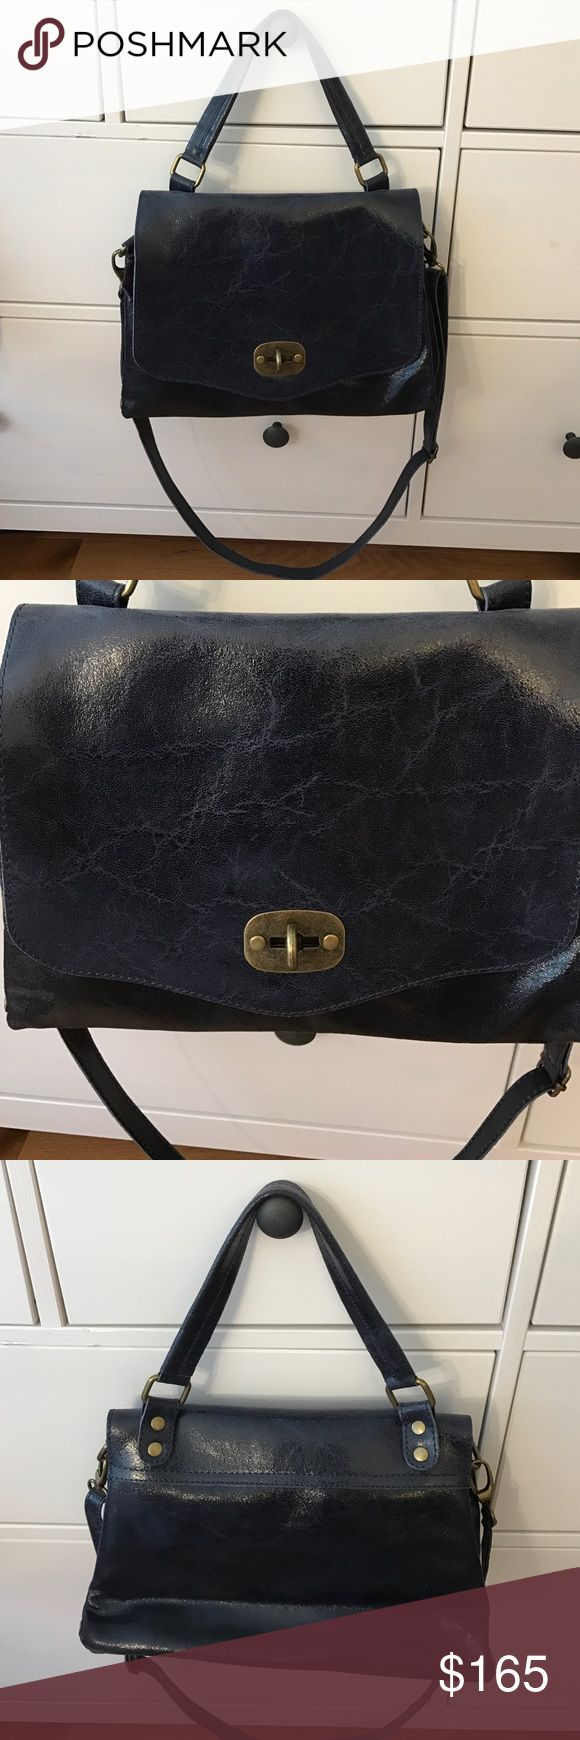 Navy Leather Day Bag Genuine leather, navy, shoulder strap, cross body strap, gold hardware, made in Italy, bought in Florence, never used!! Bags Shoulder Bags